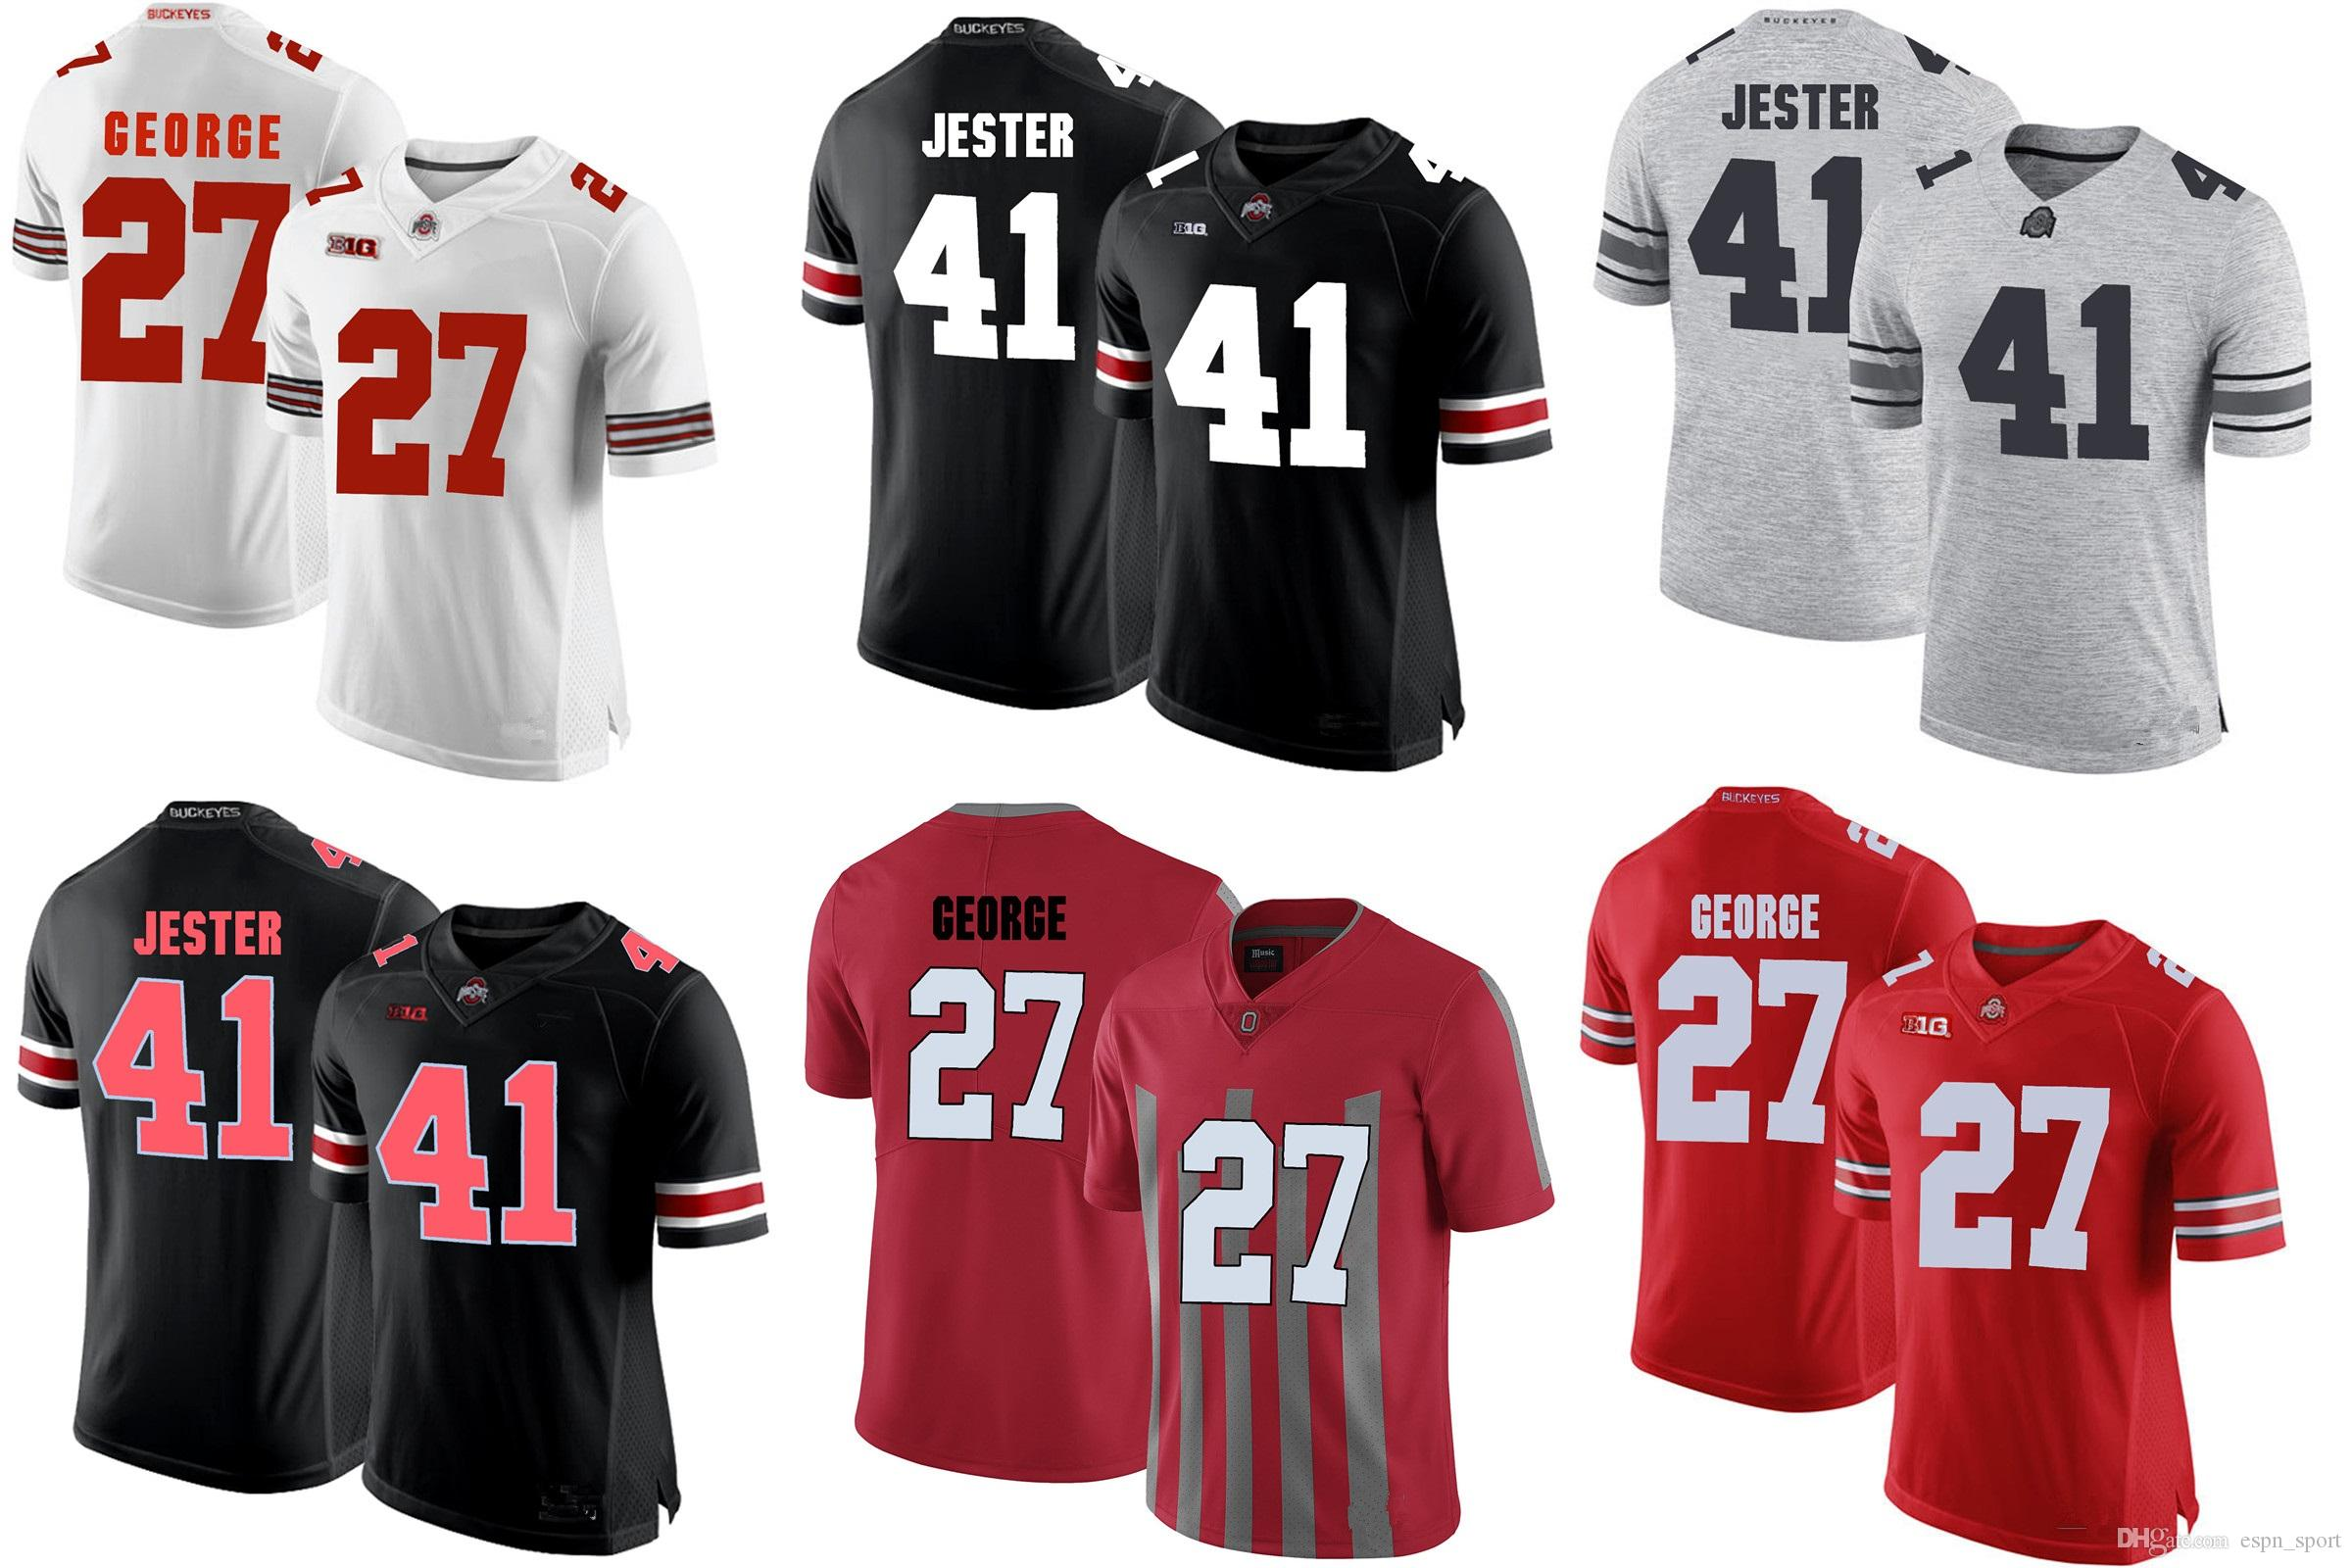 Factory Outlet- 2018 The Best Ohio State JESTER 41 GEORGE 27 College ... 36b434ceb